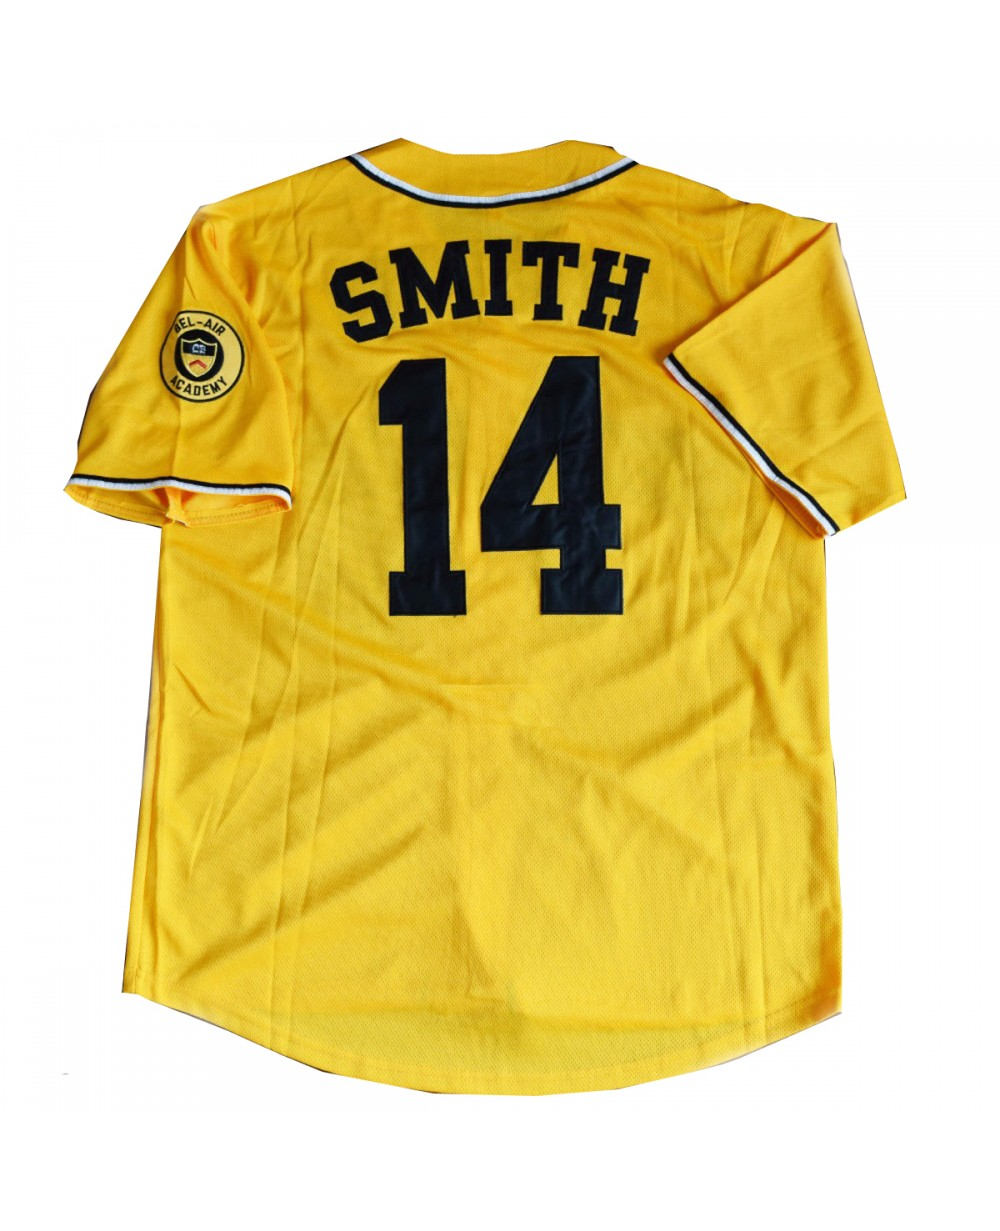 90d5a50e60a3 More Views. Will Smith  14 Bel Air Yellow Baseball Jersey